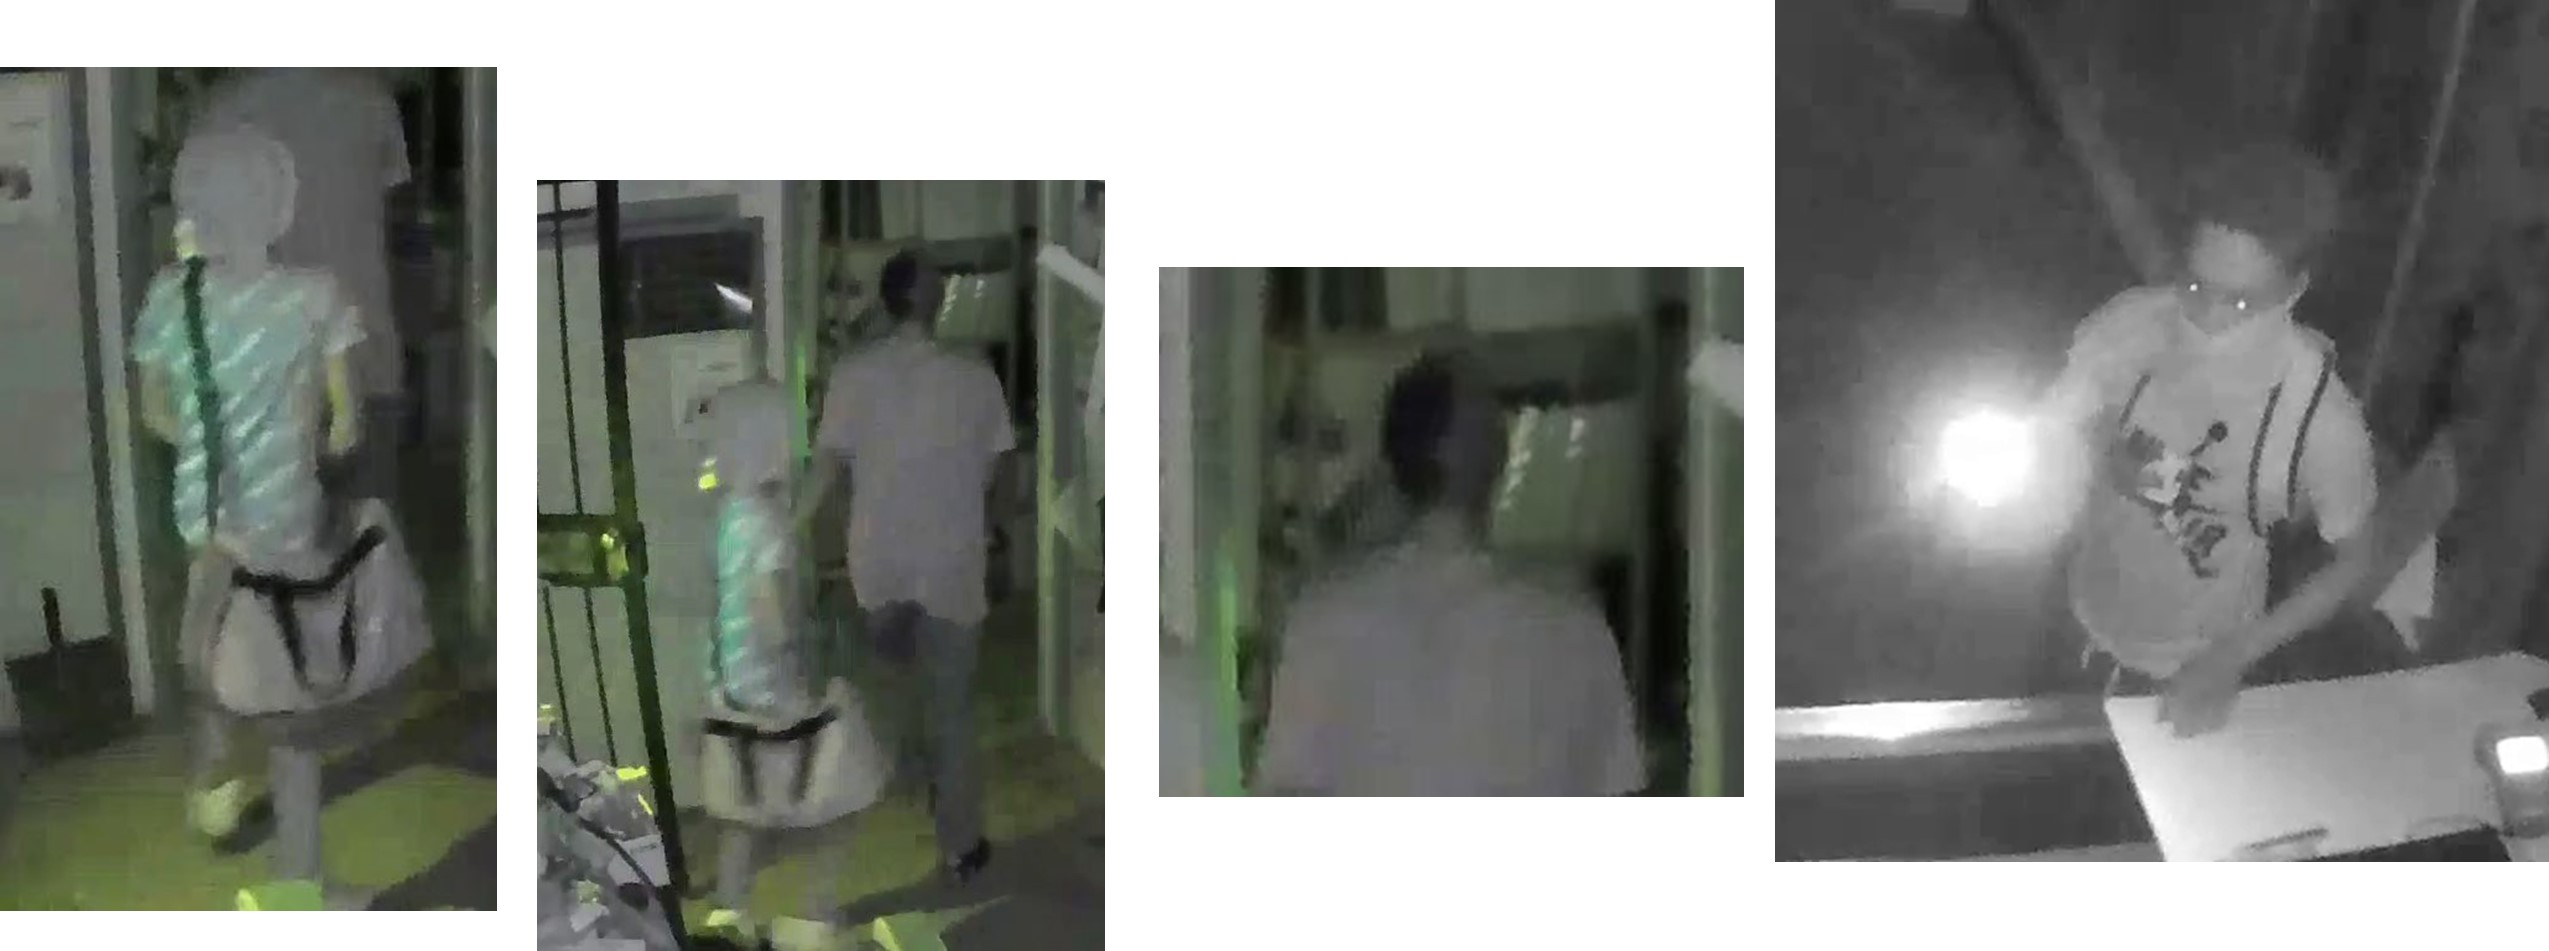 Four images of three suspects entering the Panther City Firearms premises.